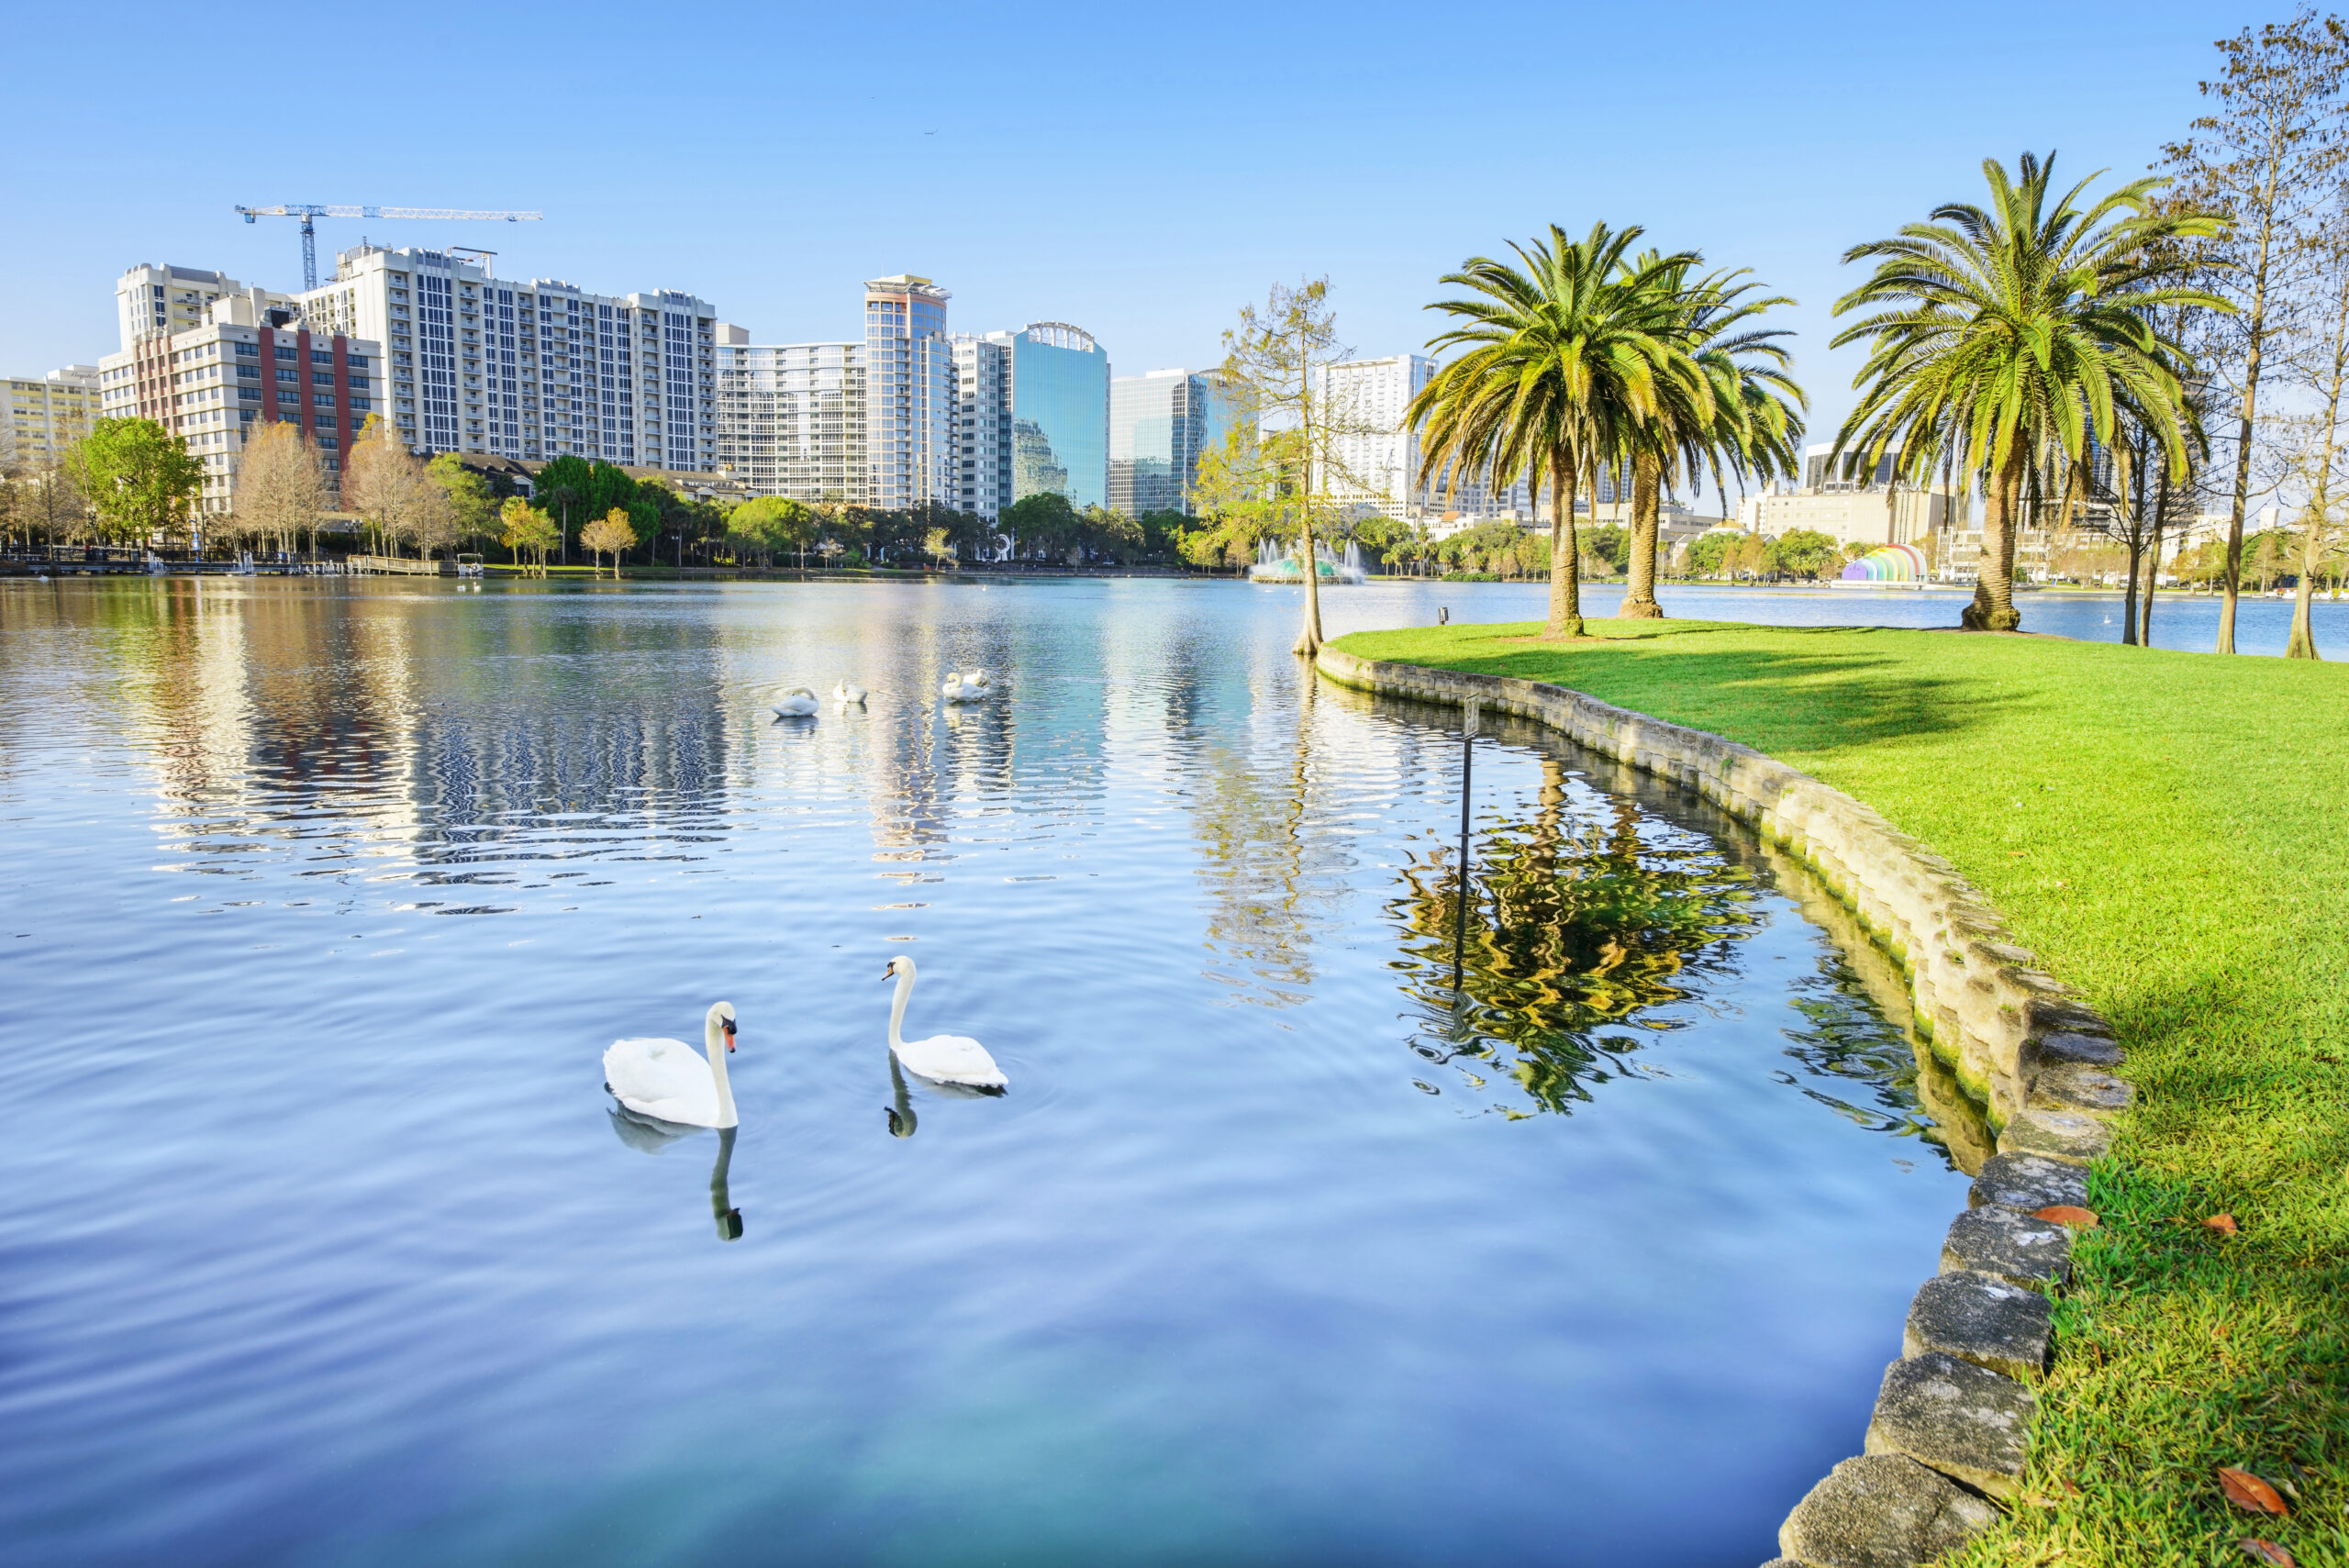 Tips for Finding the Best Places To Stay in Orlando